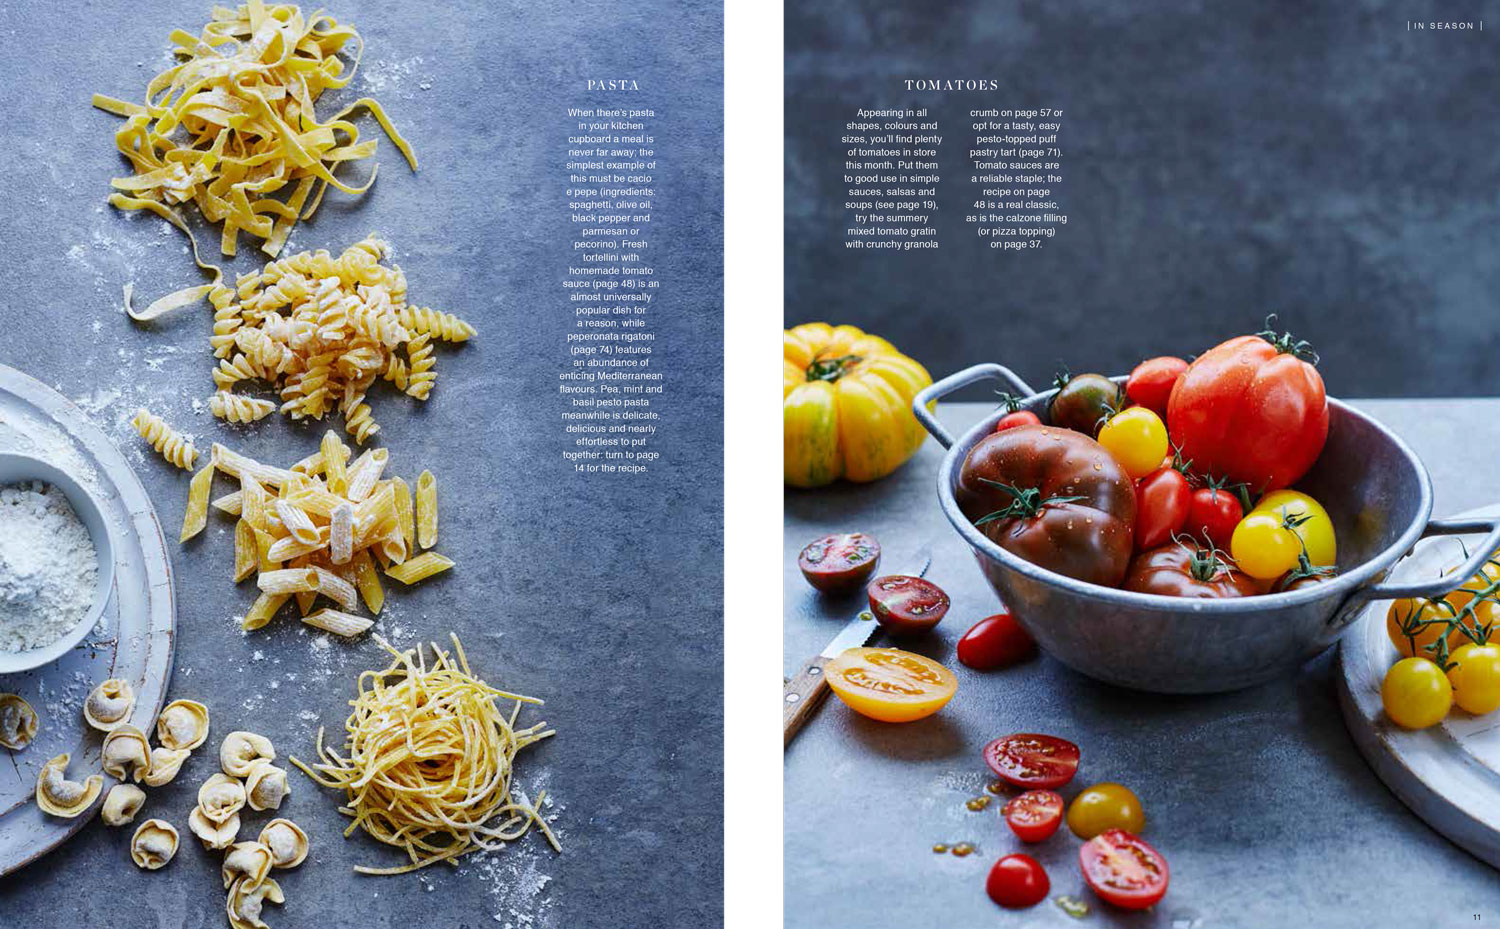 Pasta-and-tomatoes copy